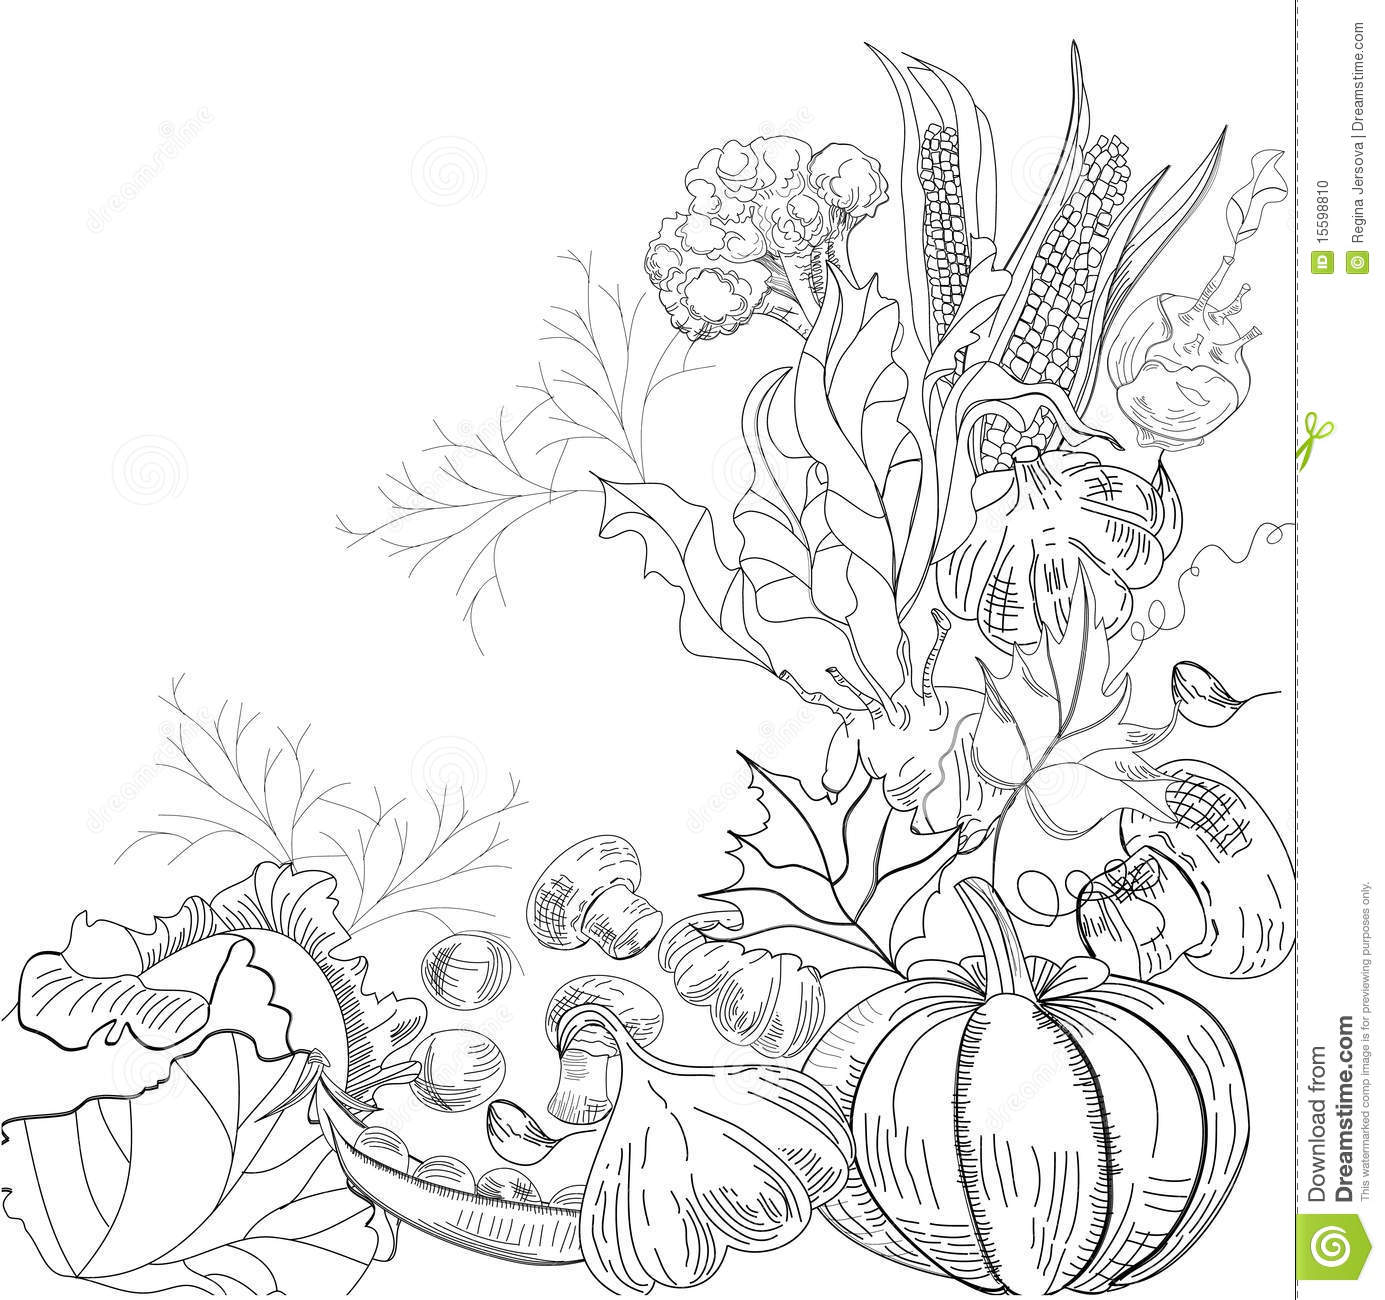 Royalty free stock photo download sketch with vegetable